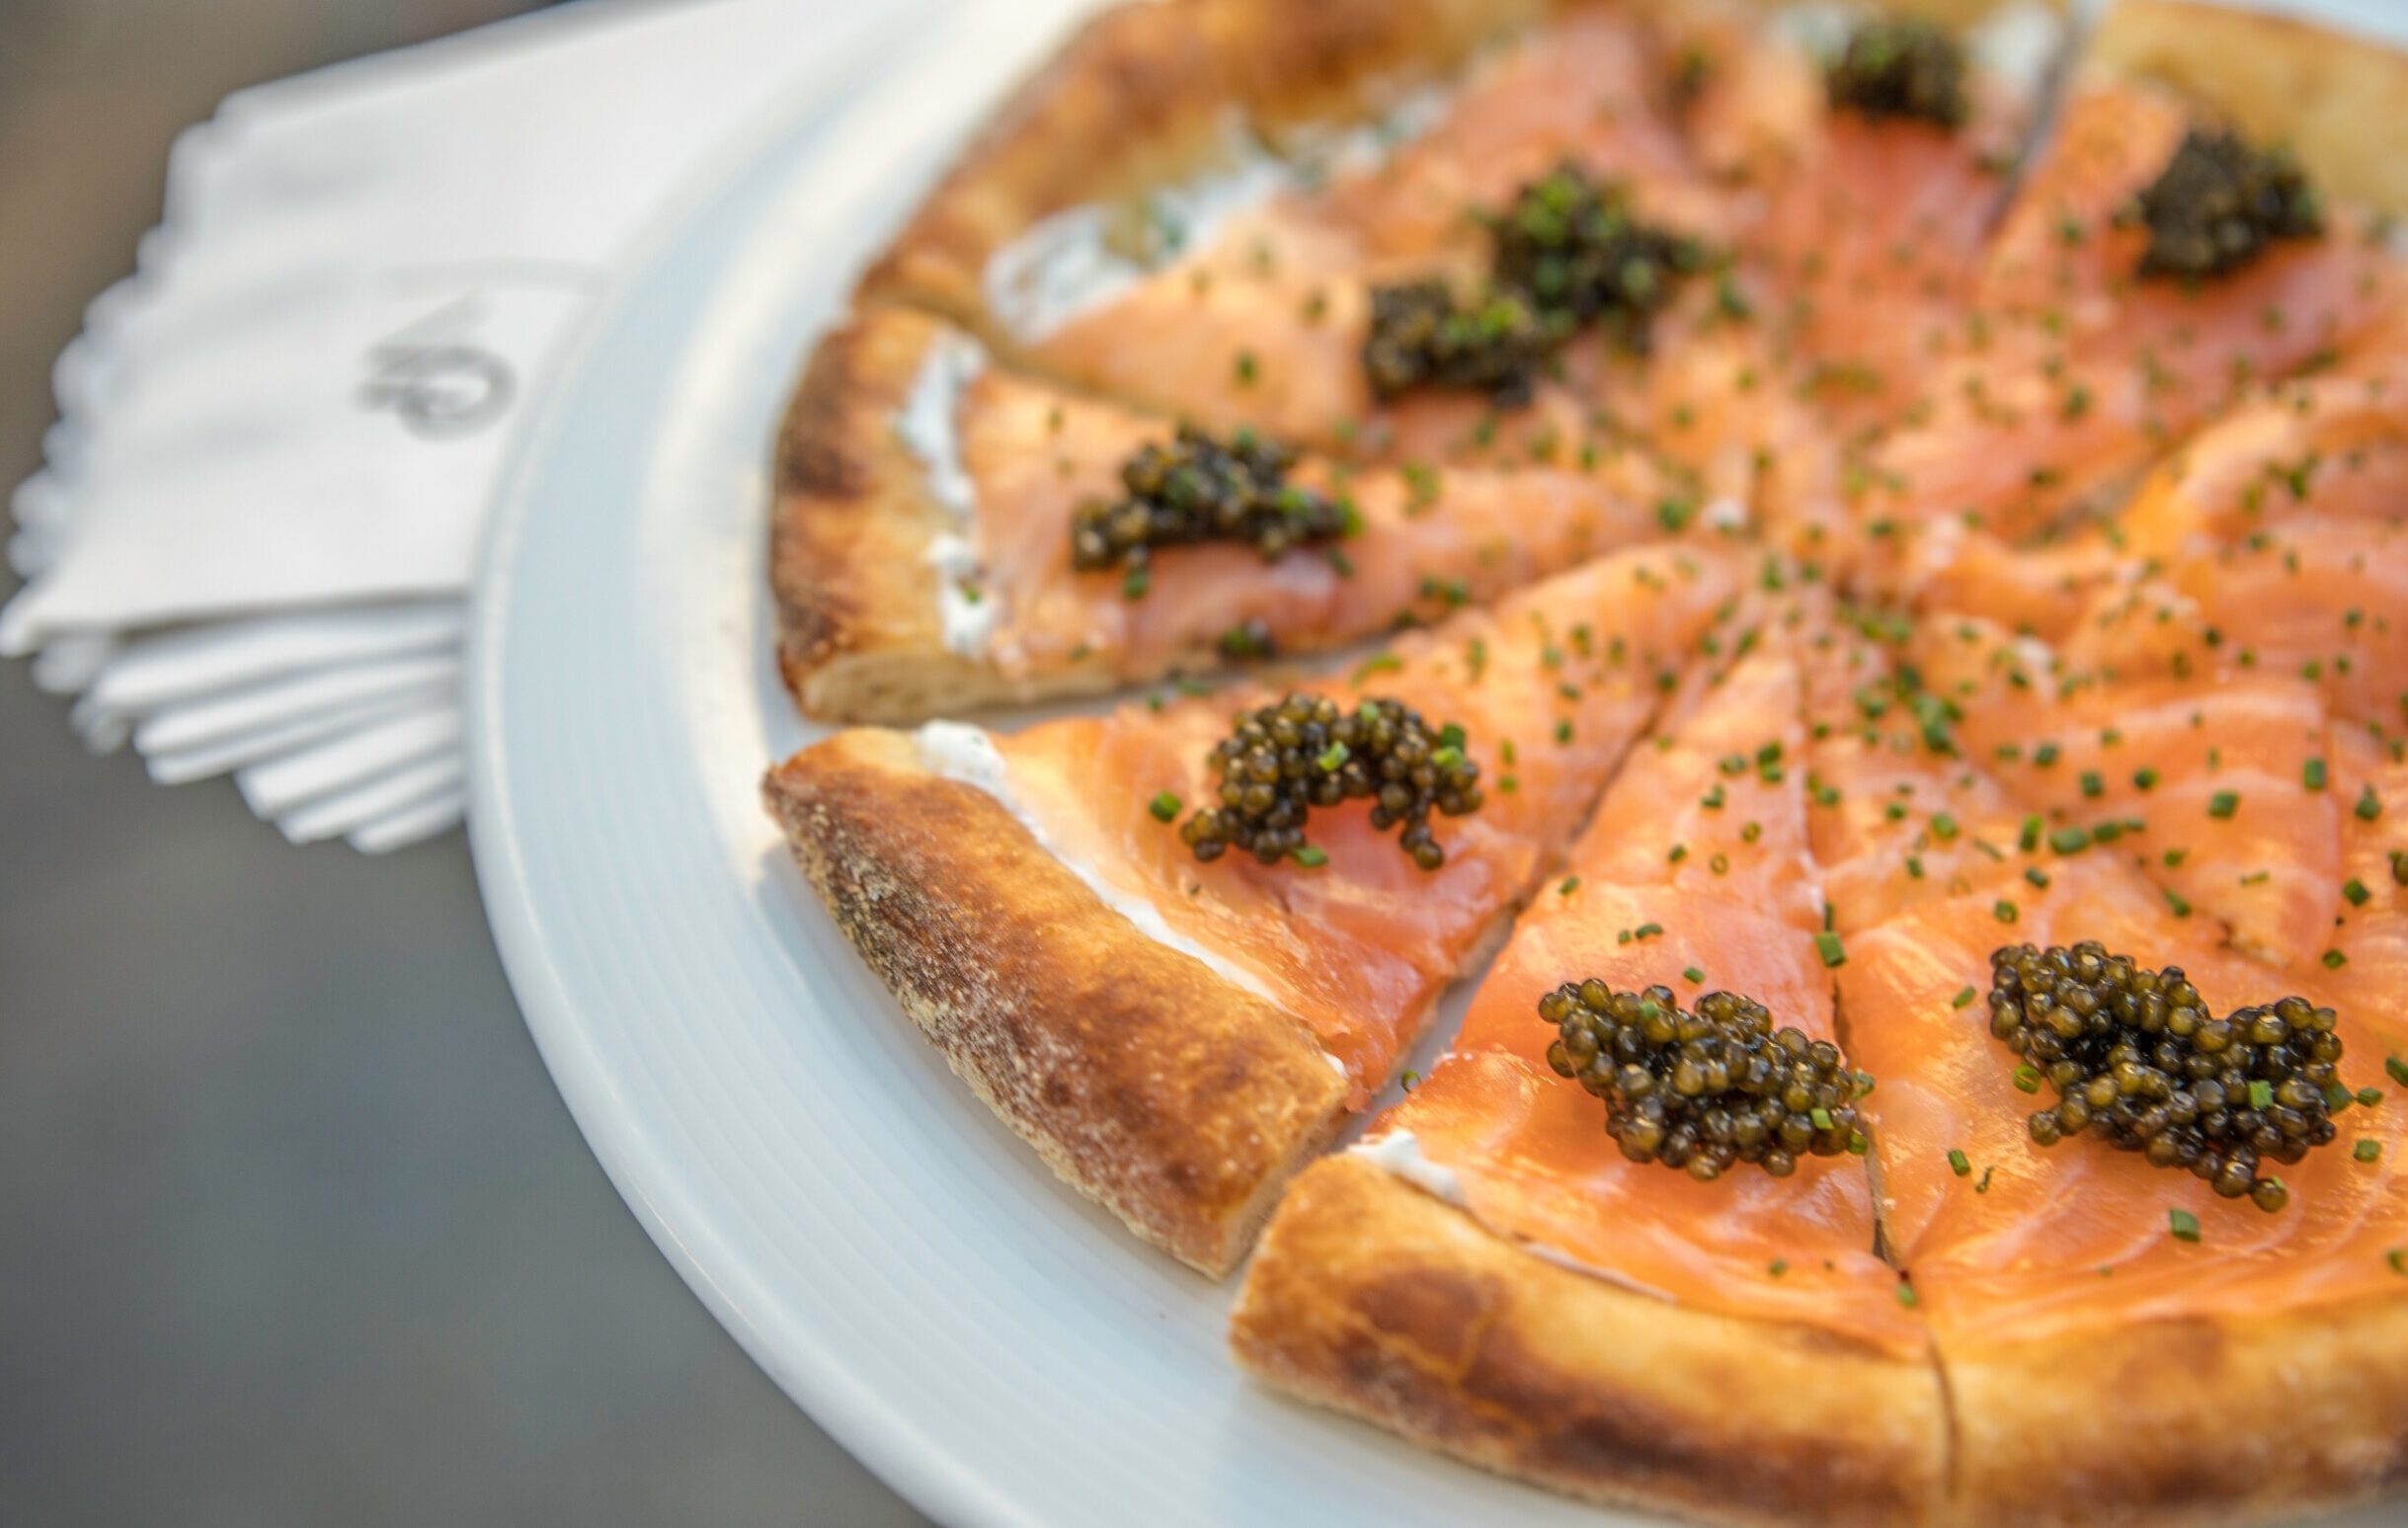 Texas Medical Center Wolfgang Puck Catering Spago Style Smoked Salmon Pizza